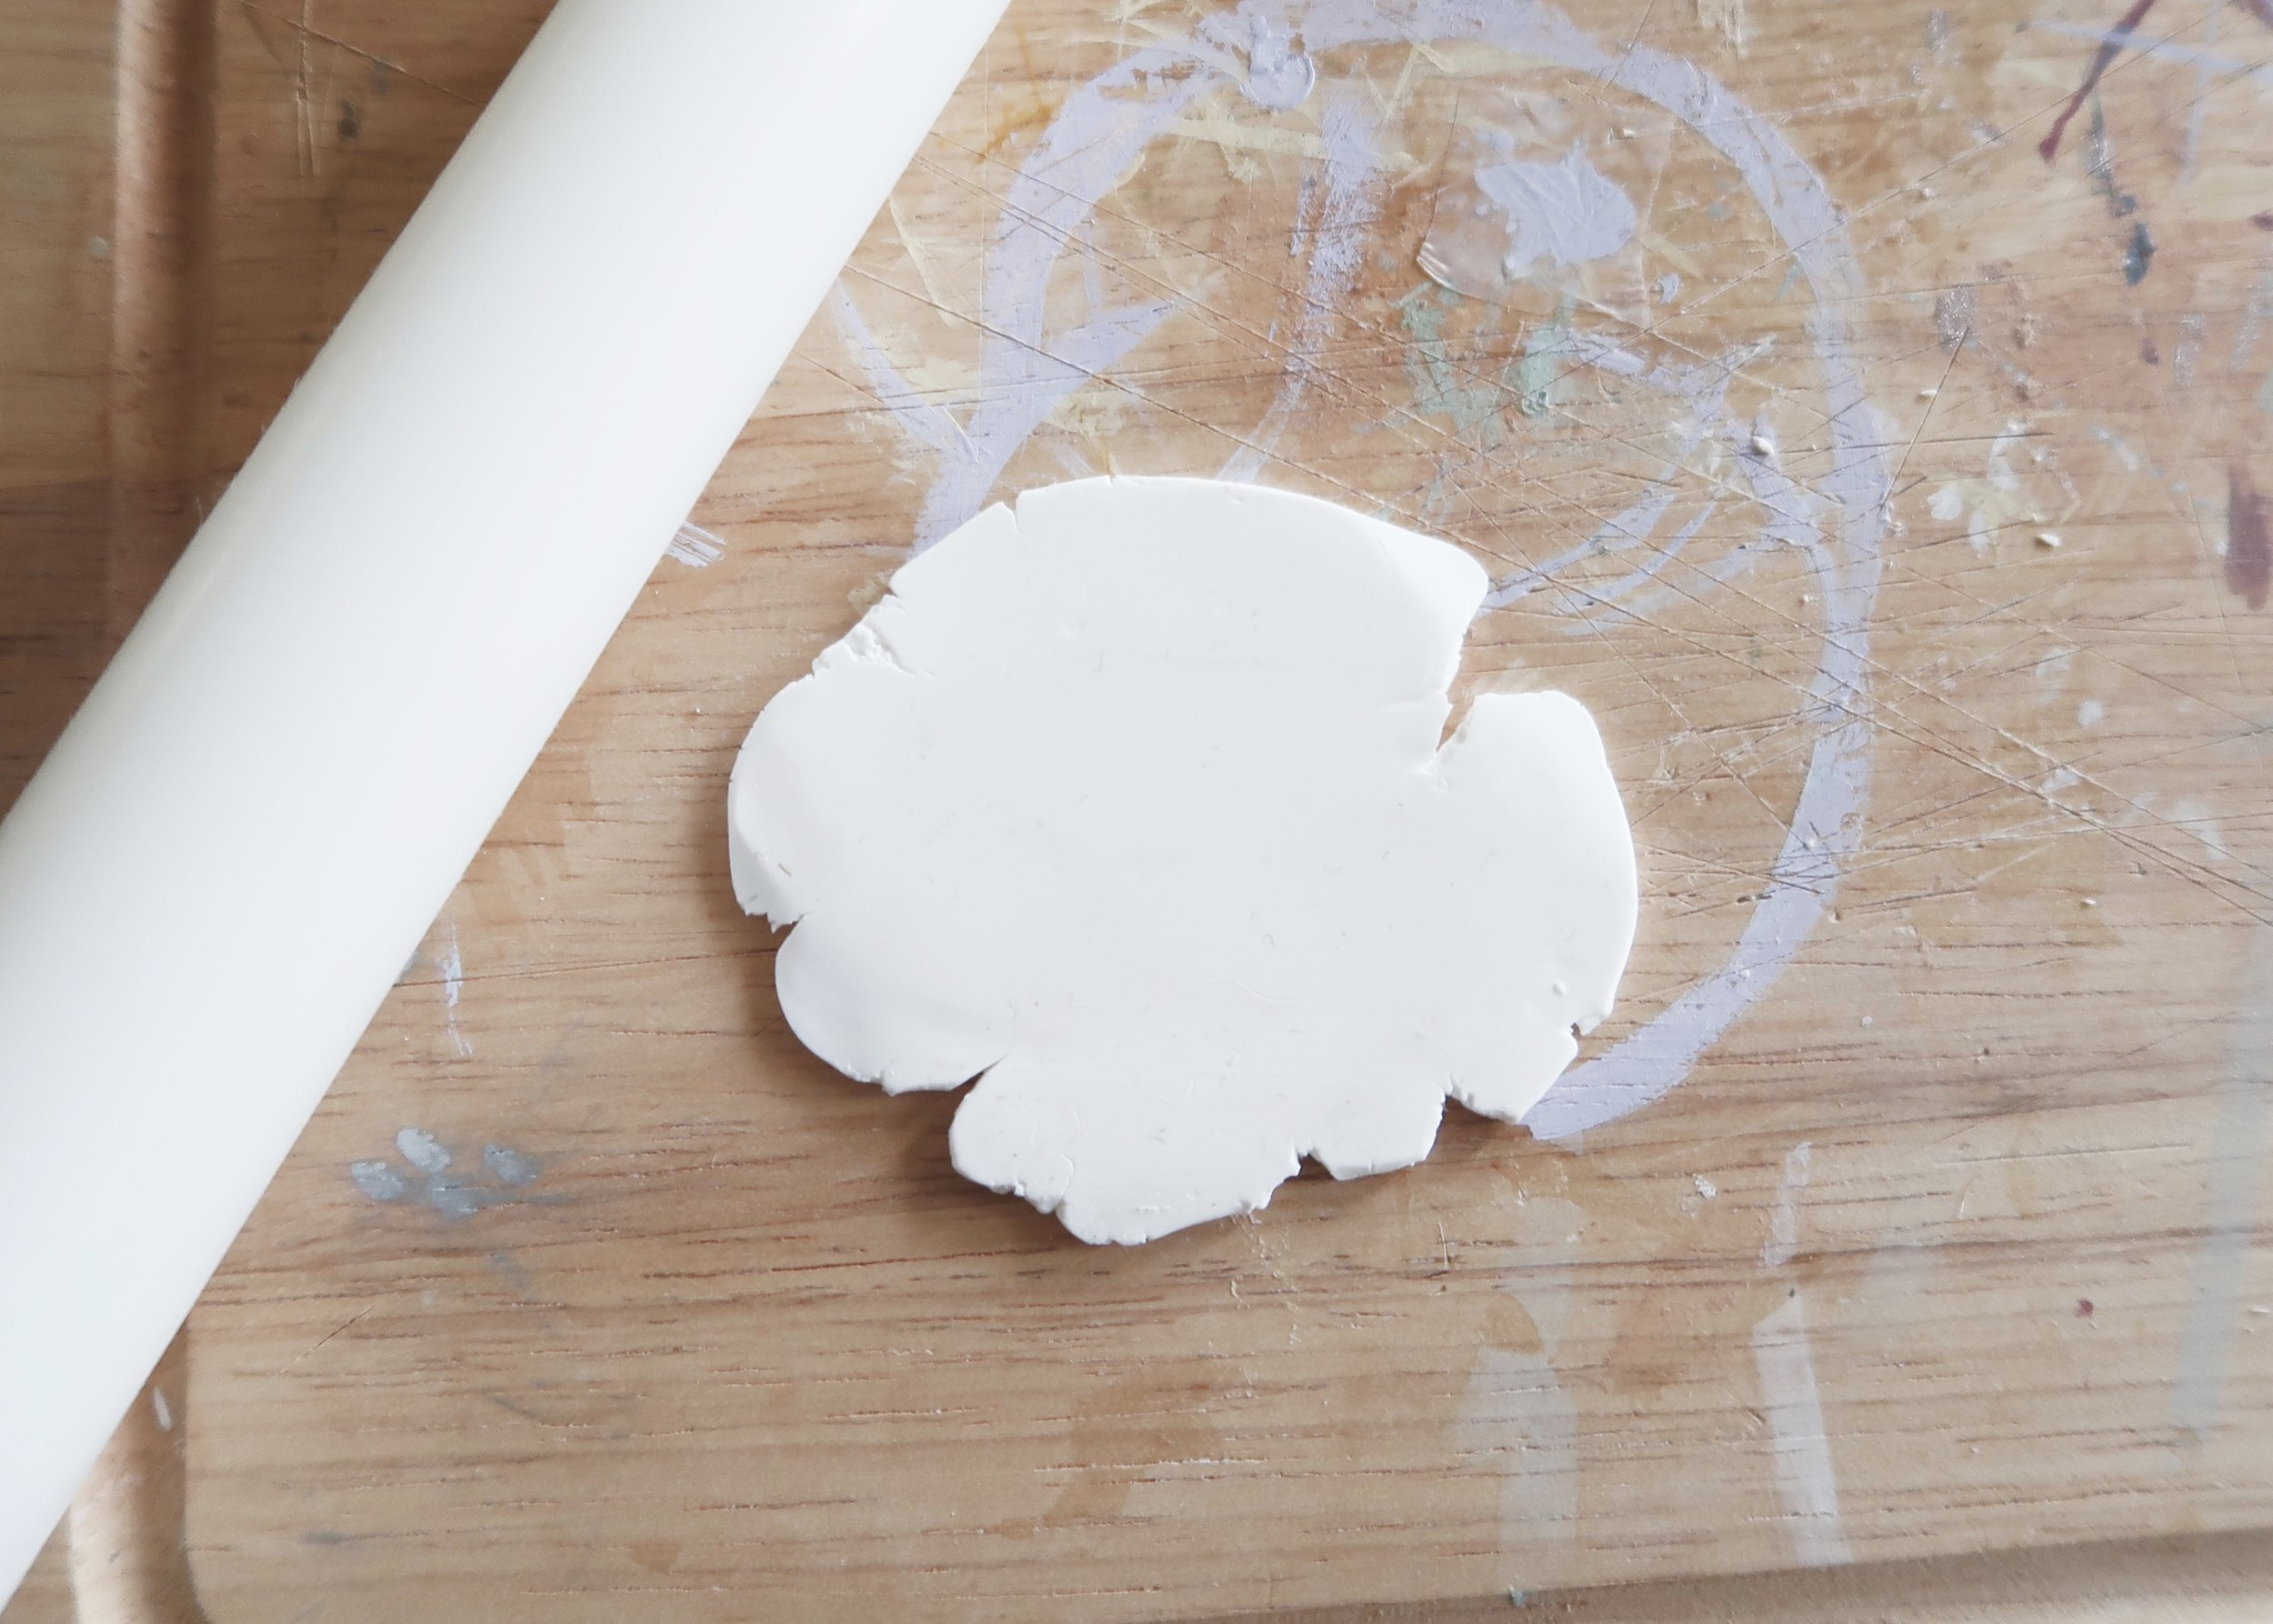 1. - First of all, knead some polymer clay in your hands until it is softer and more pliable. Roll out the clay until it is large enough and trace a round glass with your craft knife to cut out a circle from the clay.